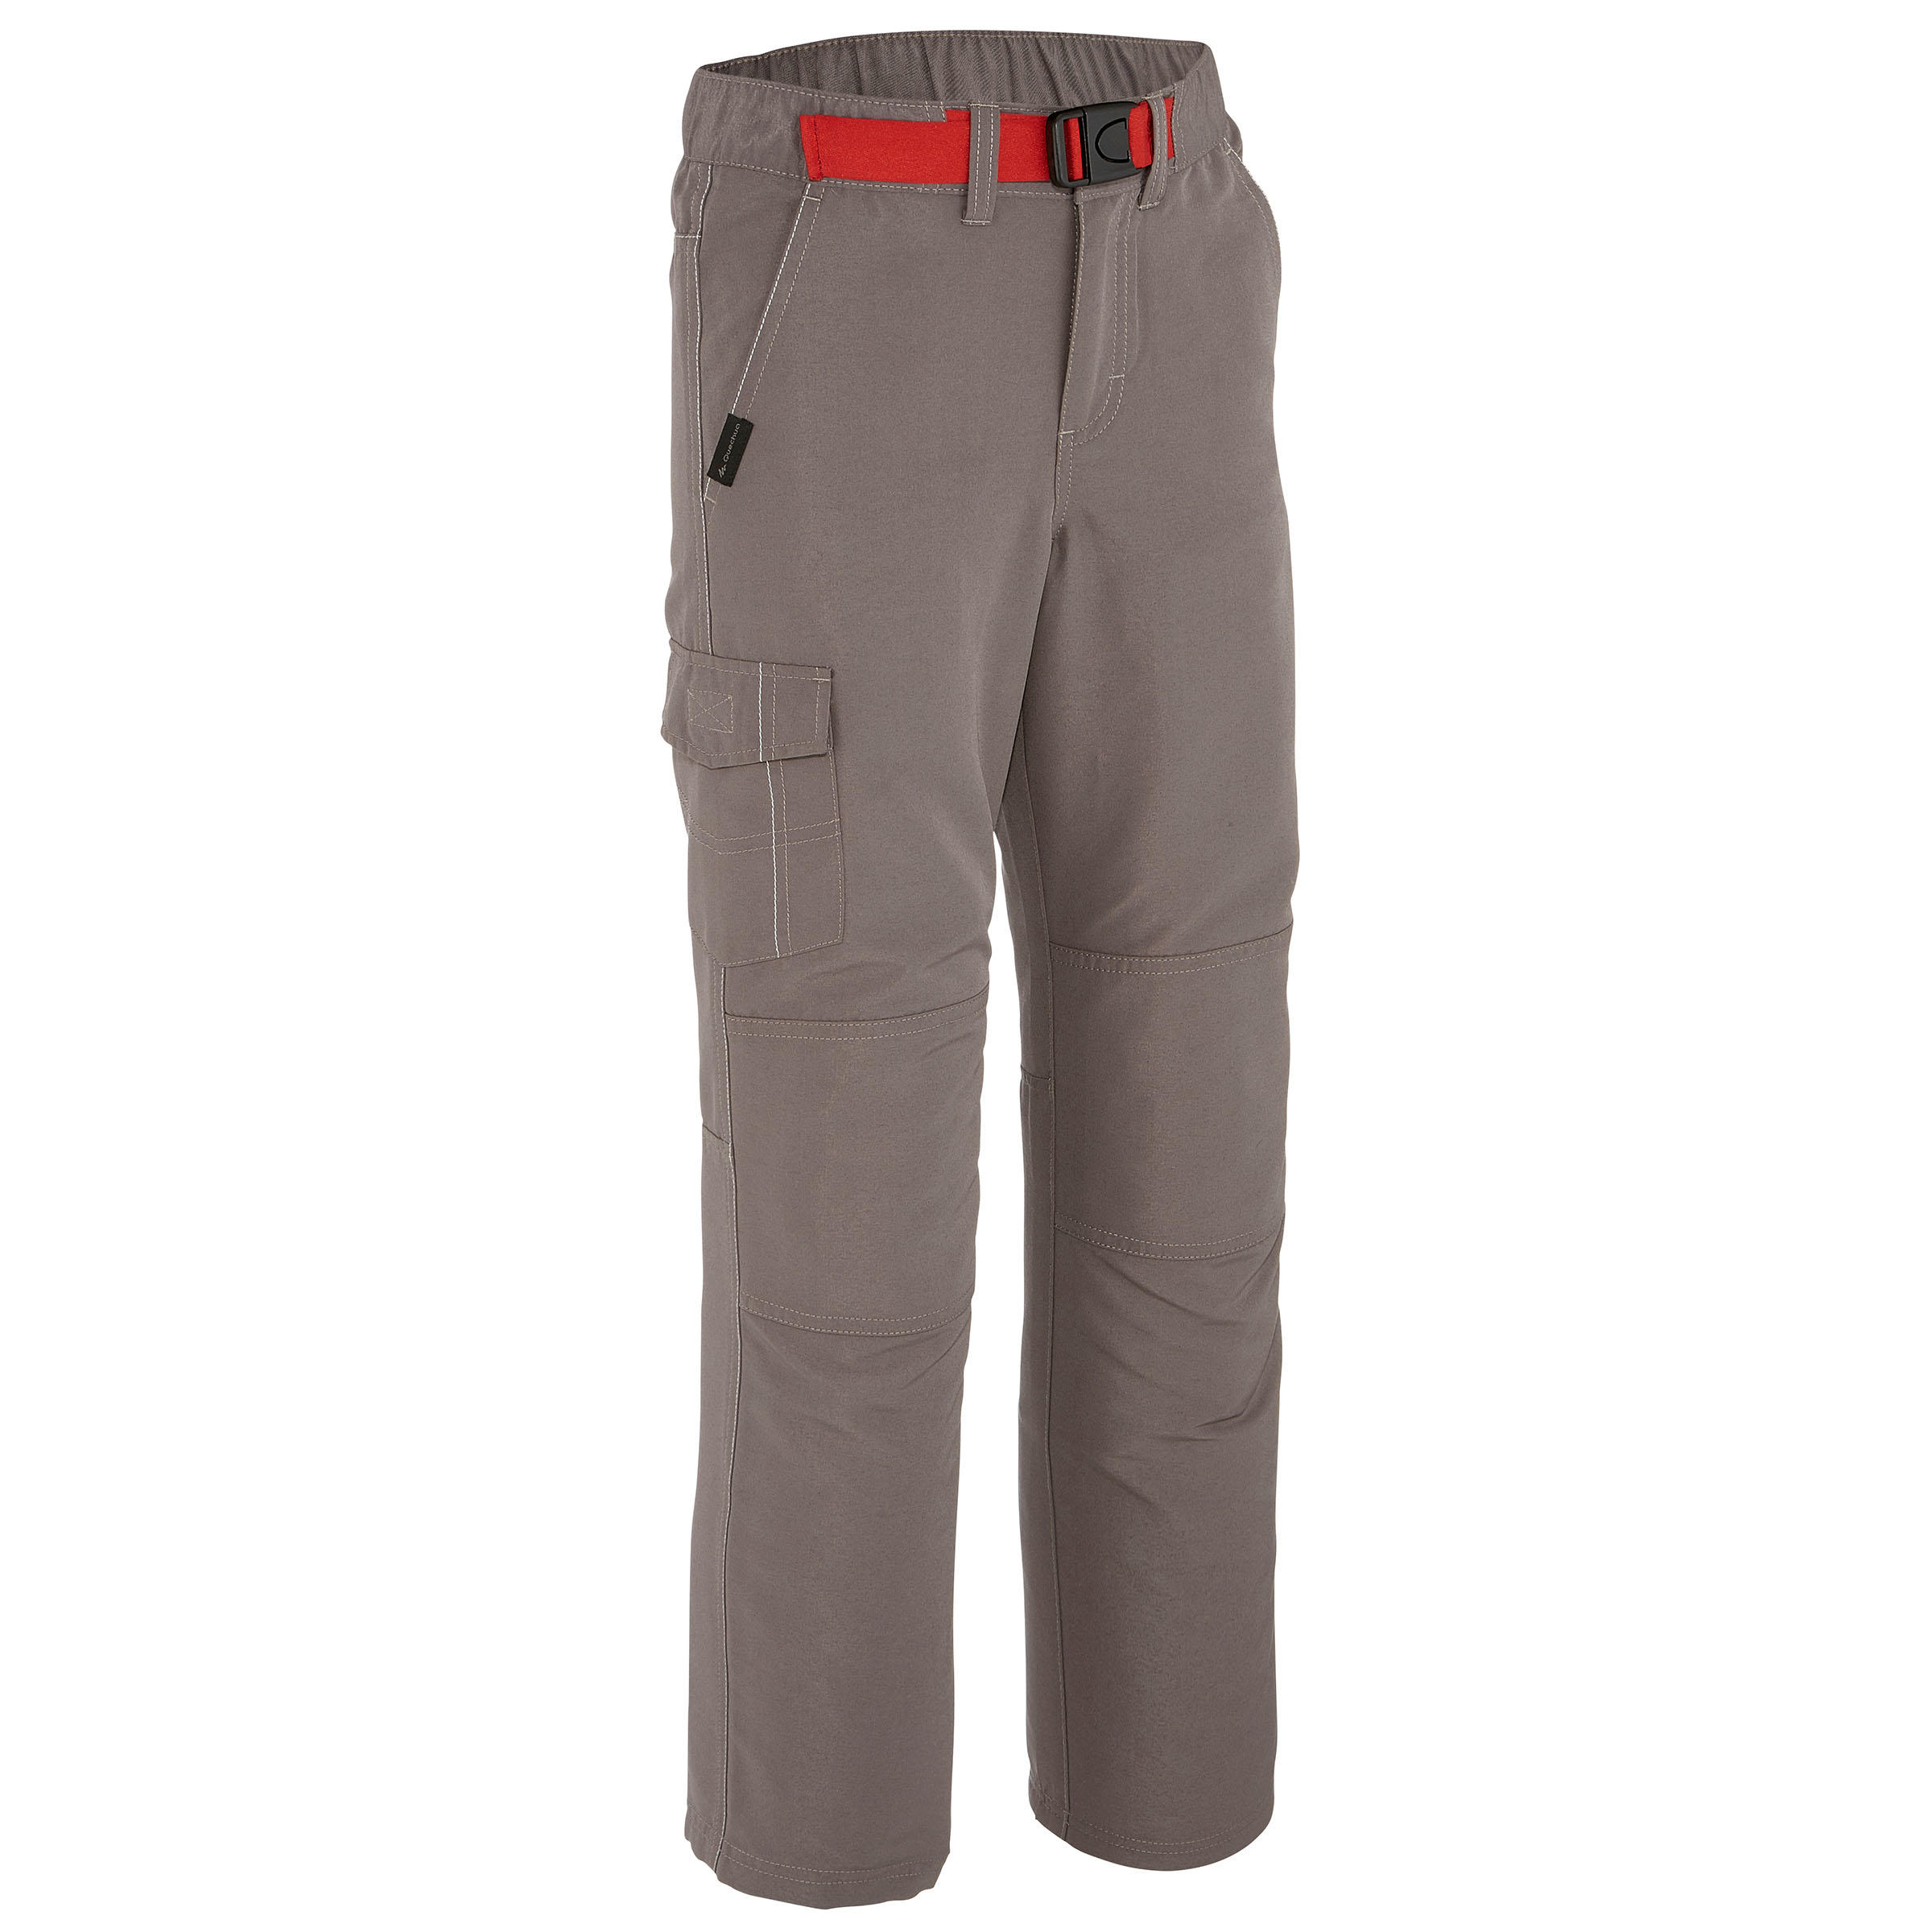 Boys' Hiking Trousers Hike 100 - Grey